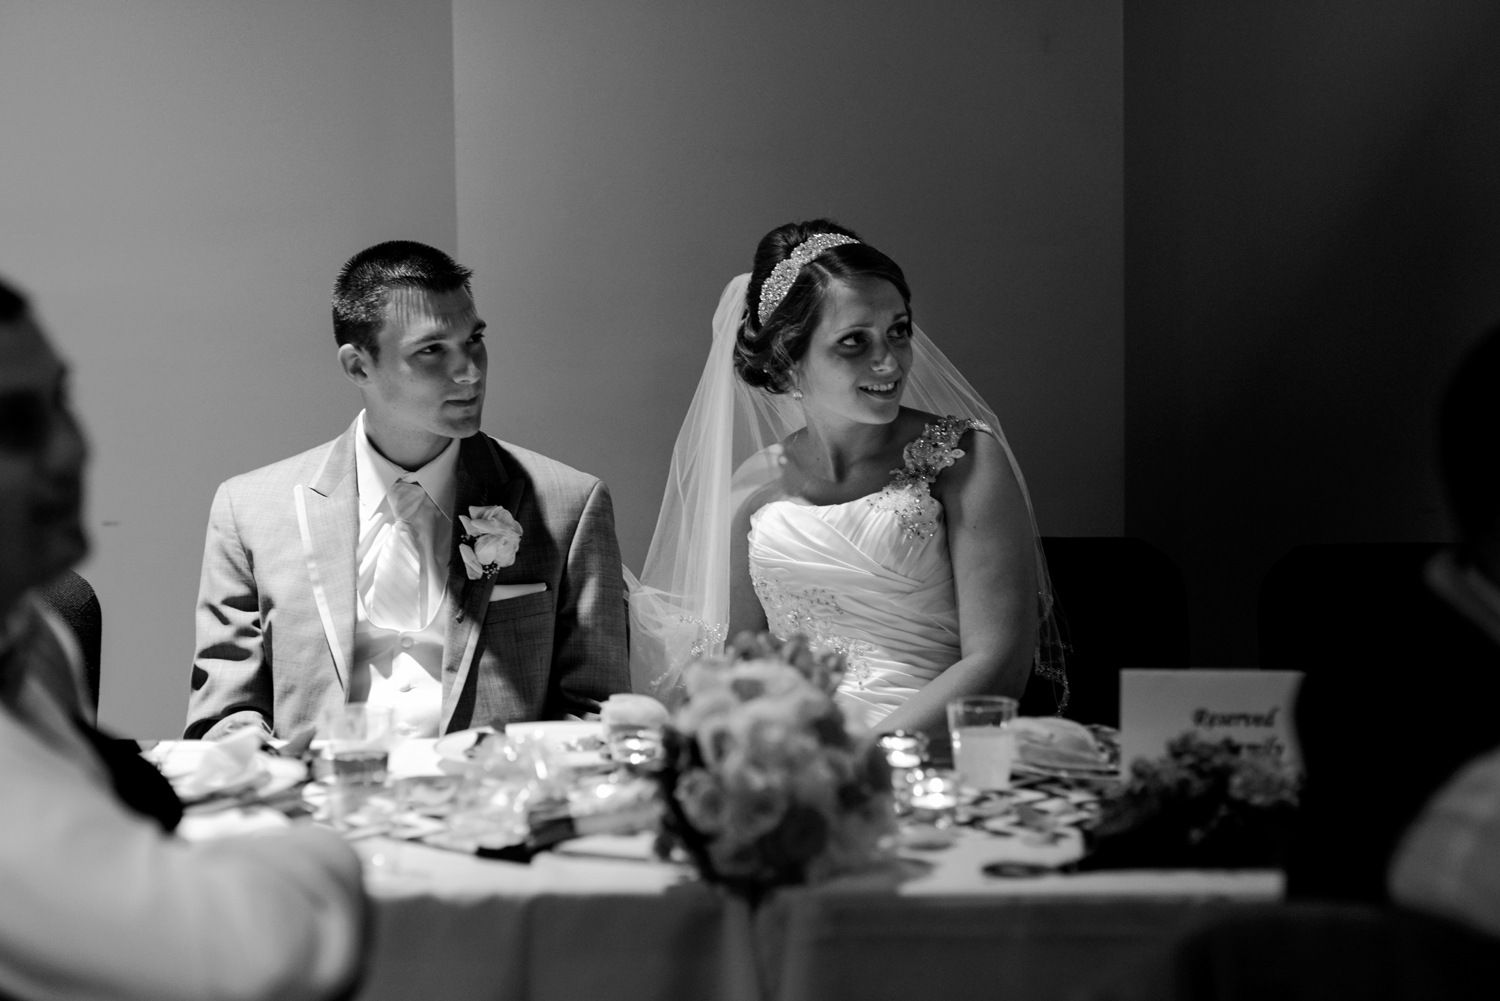 Bride and groom in black and white at wedding reception at Liberty Baptist Church in Suffolk, Virginia